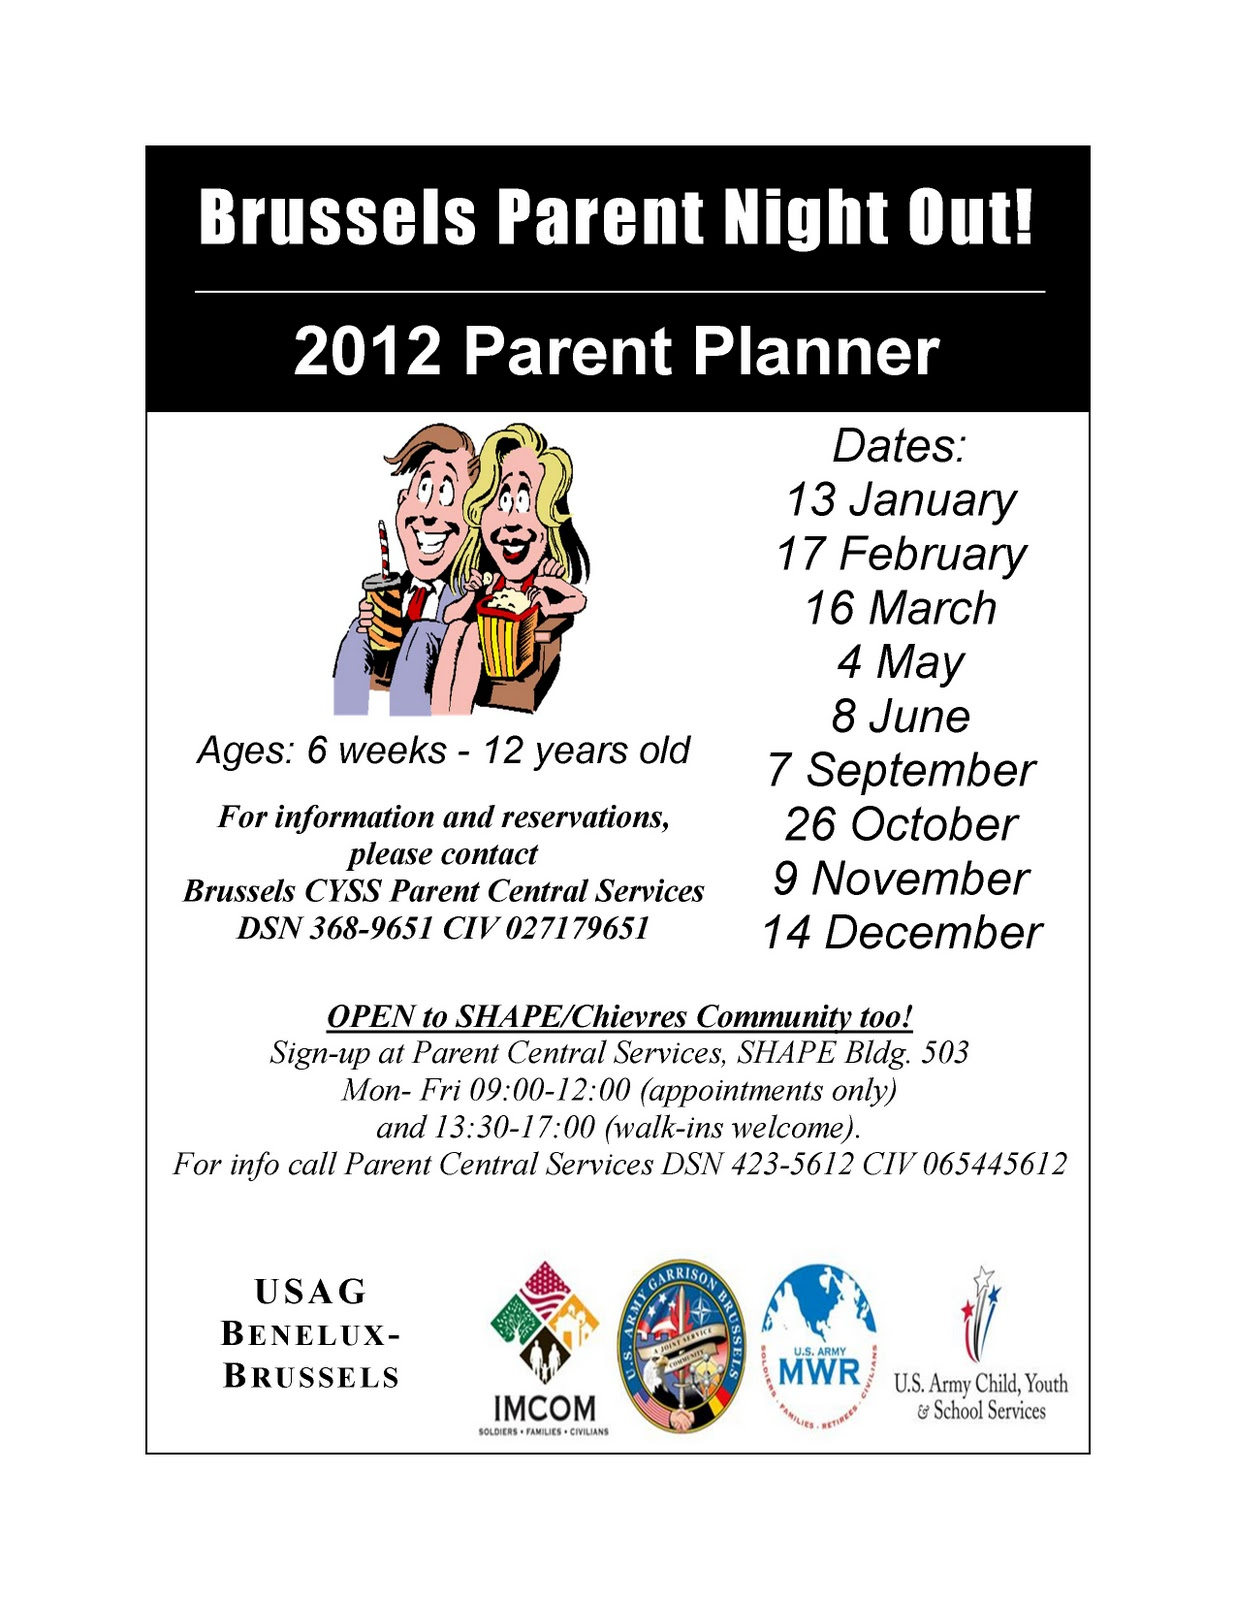 Parents Night Out Flyer Template - Family reading night flyer template